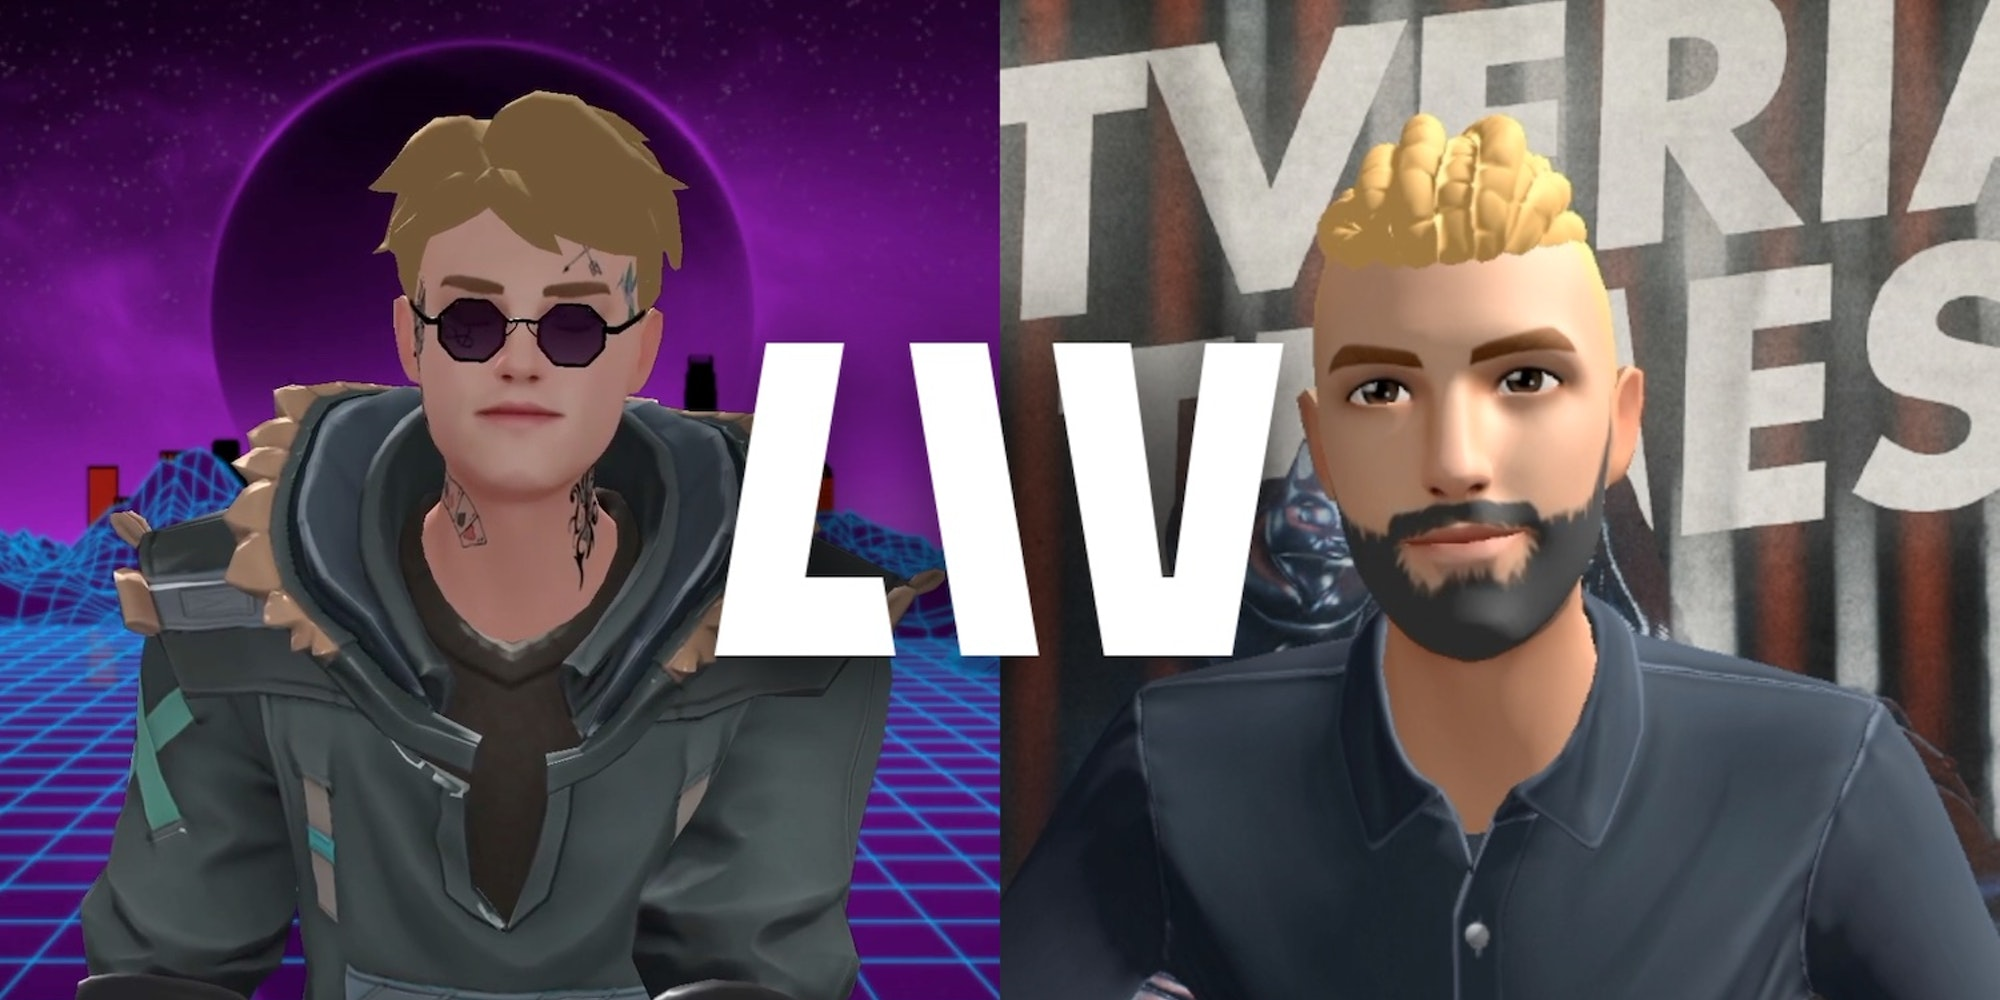 Talking about the future of VR content creation with LIV's Co-Founder & CEO, AJ 'Dr Doom' Shewki